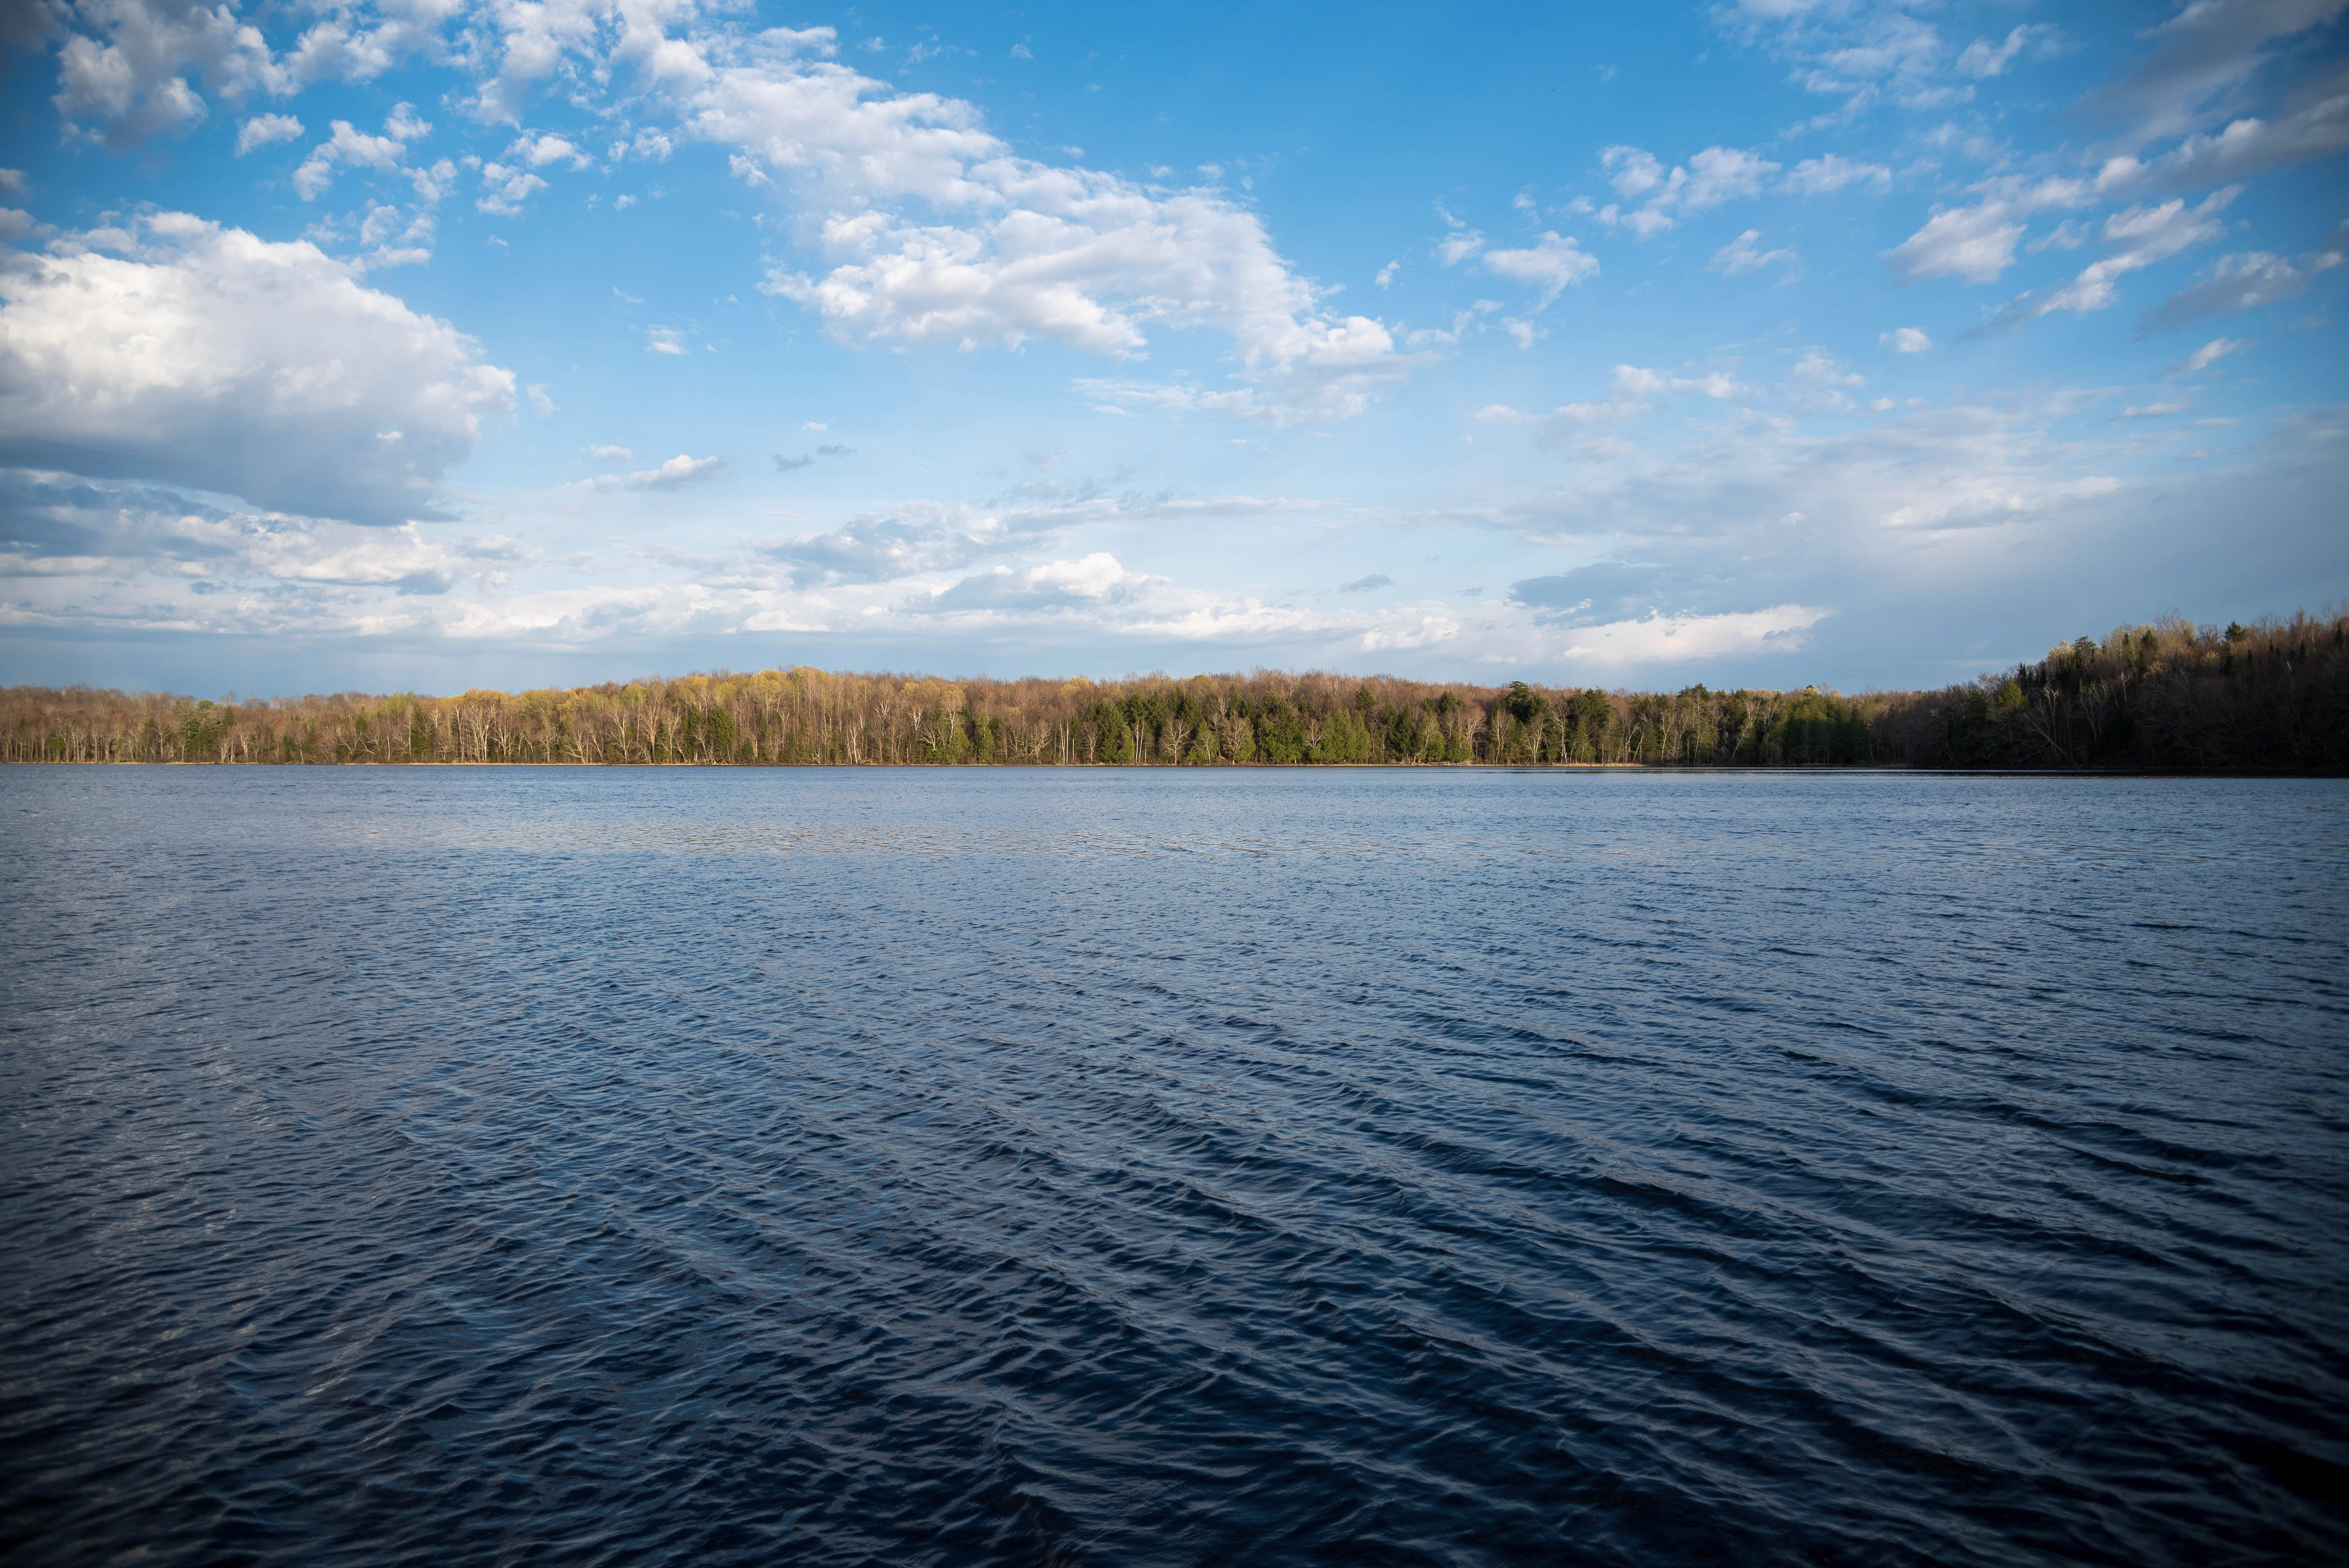 Landscape And Nature Scenery At Lake Of The Pines Image